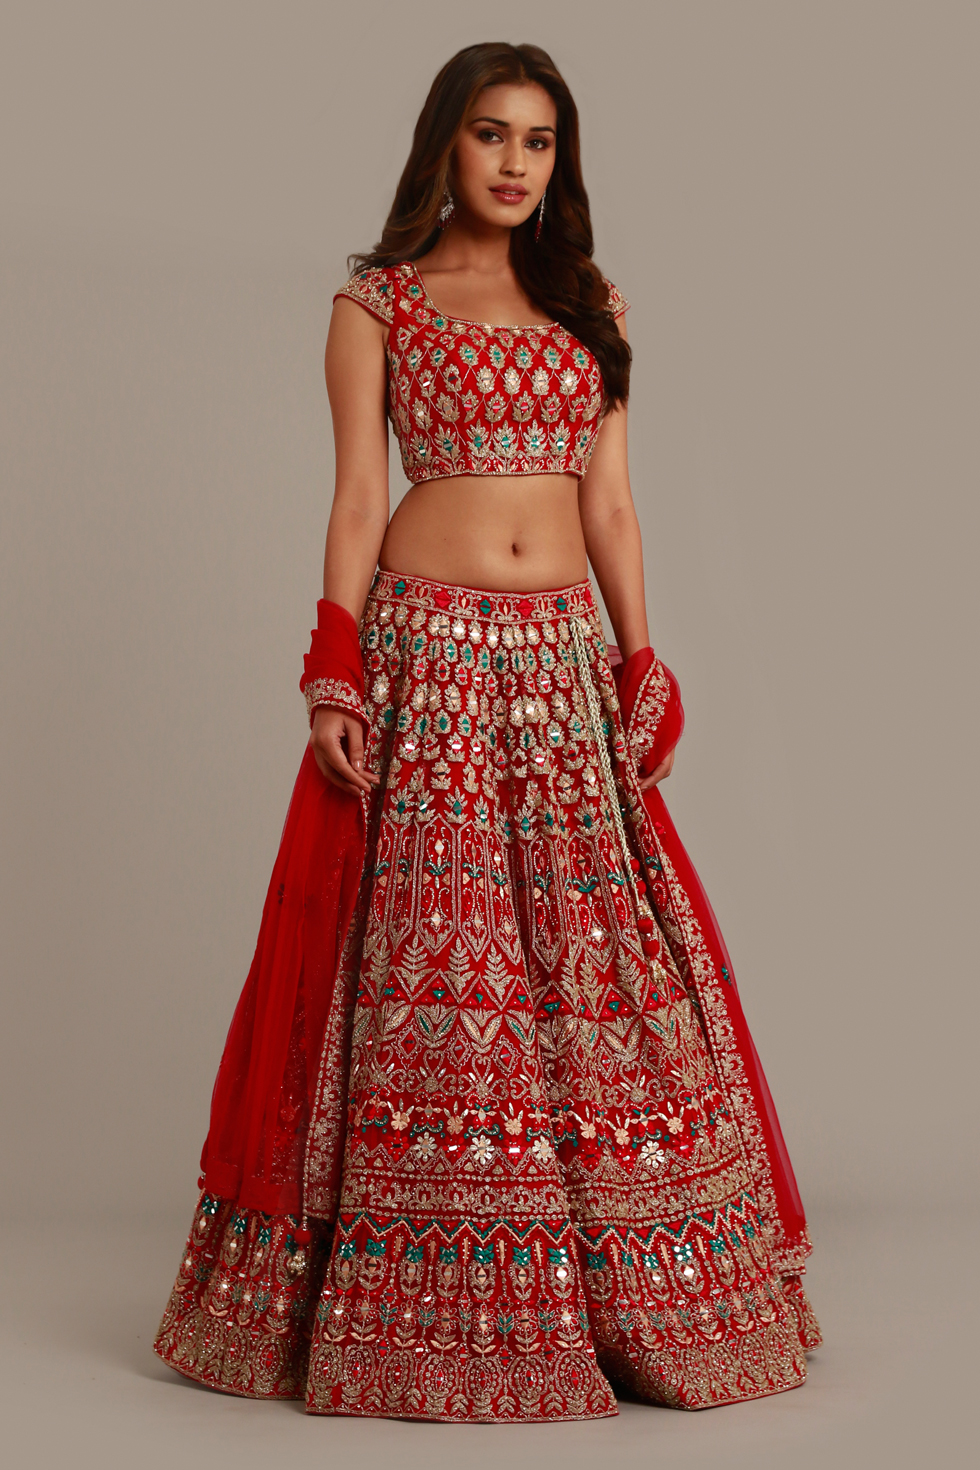 Fiery red  lehenga set with multi coloured embroidery, silver embellishments and matching dupatta